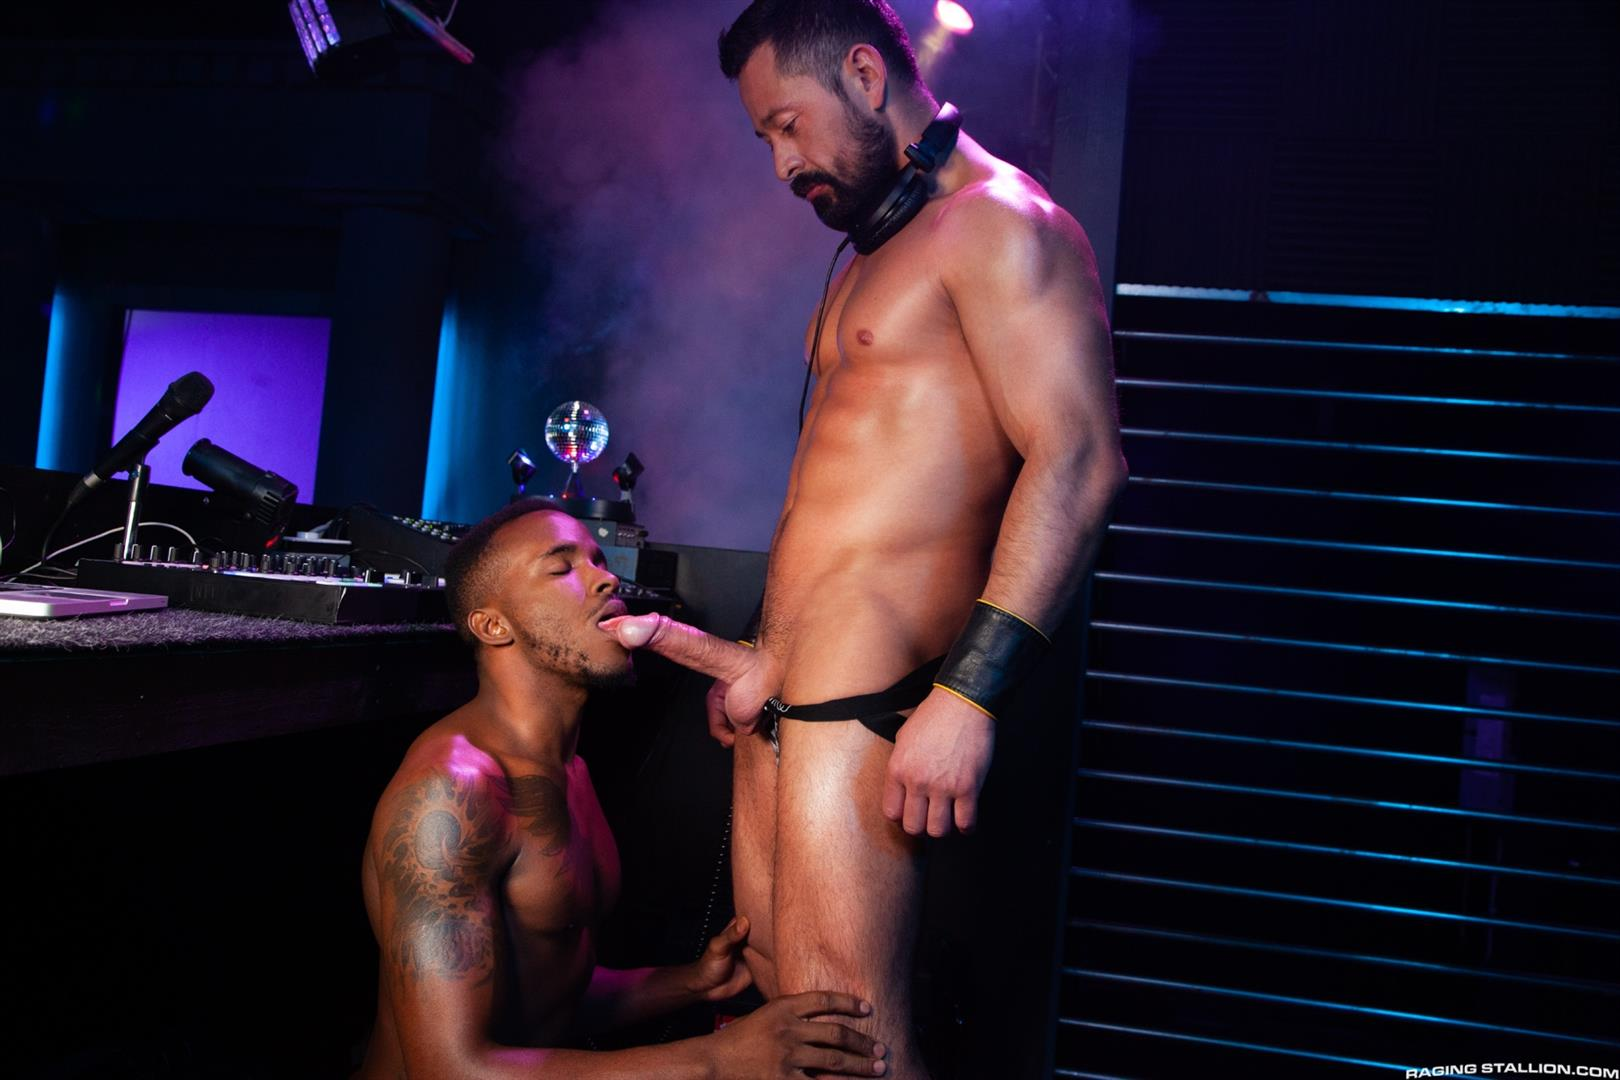 Raging-Stallion-Pheonix-Fellington-and-Cristian-Sam-Big-Black-Cocksucking-Video-08 Getting My Big Black Cock Sucked In The DJ Booth